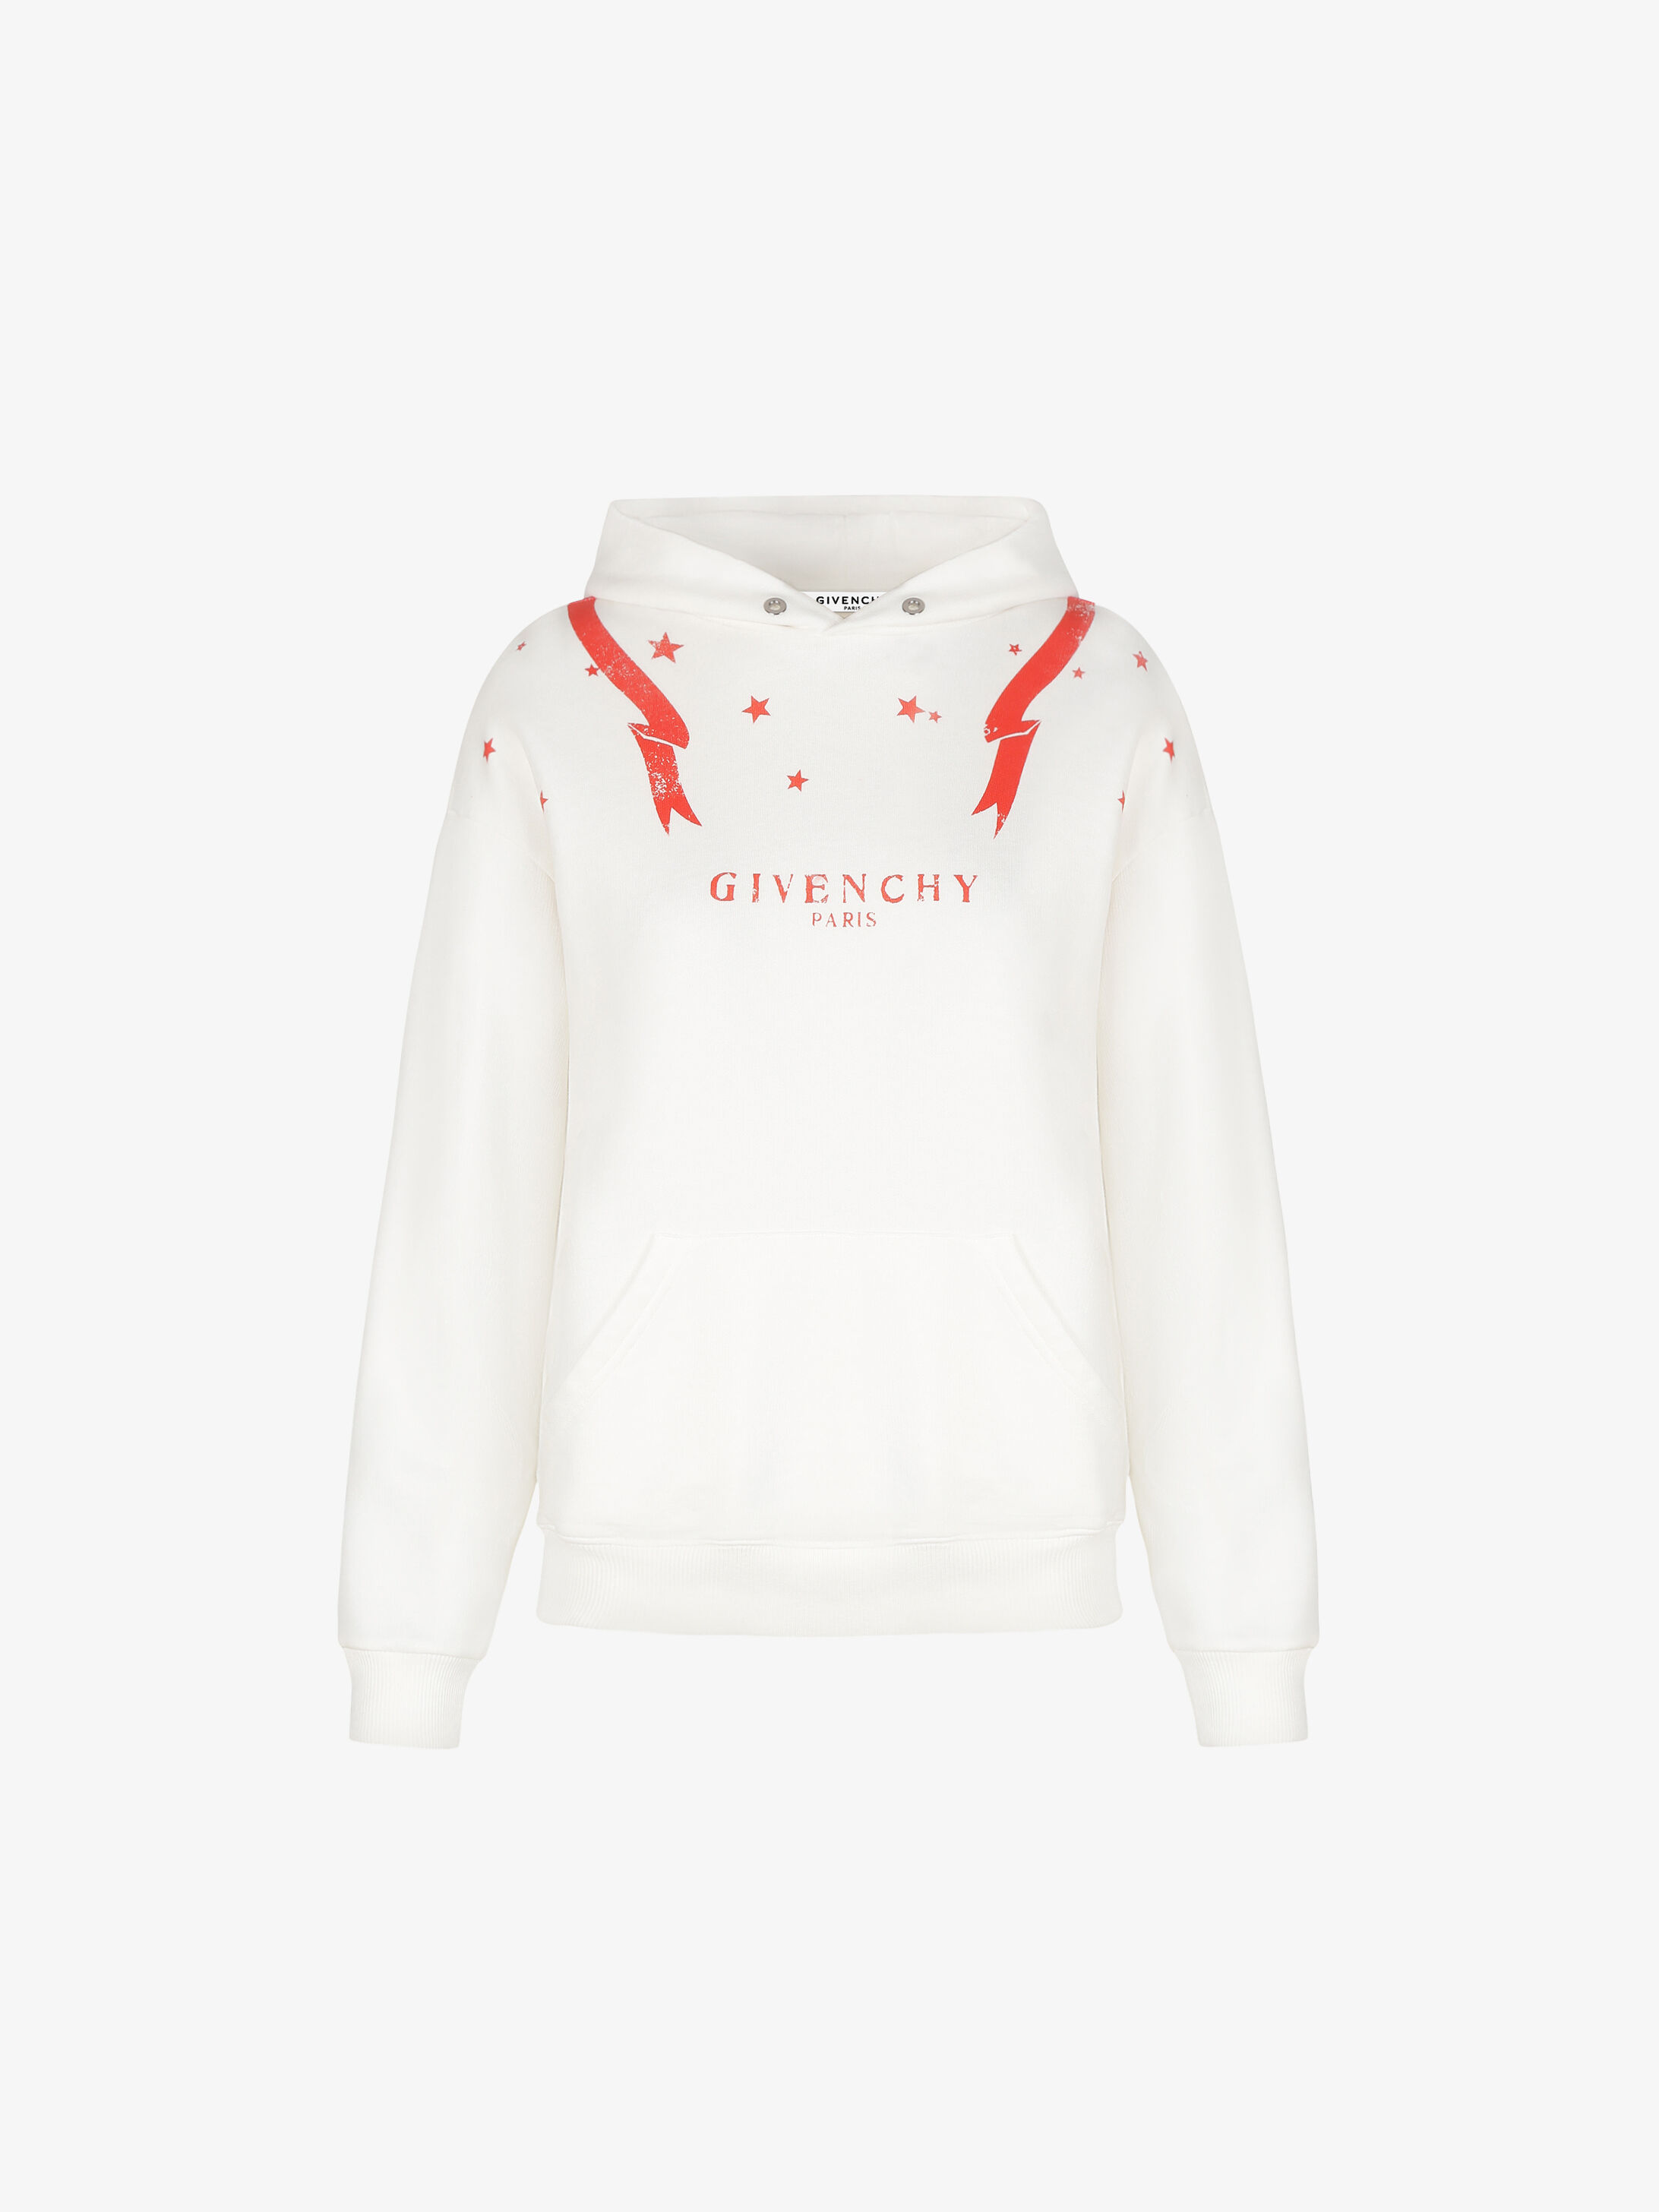 Women s Sweatshirts collection by Givenchy.  dd910d06c960